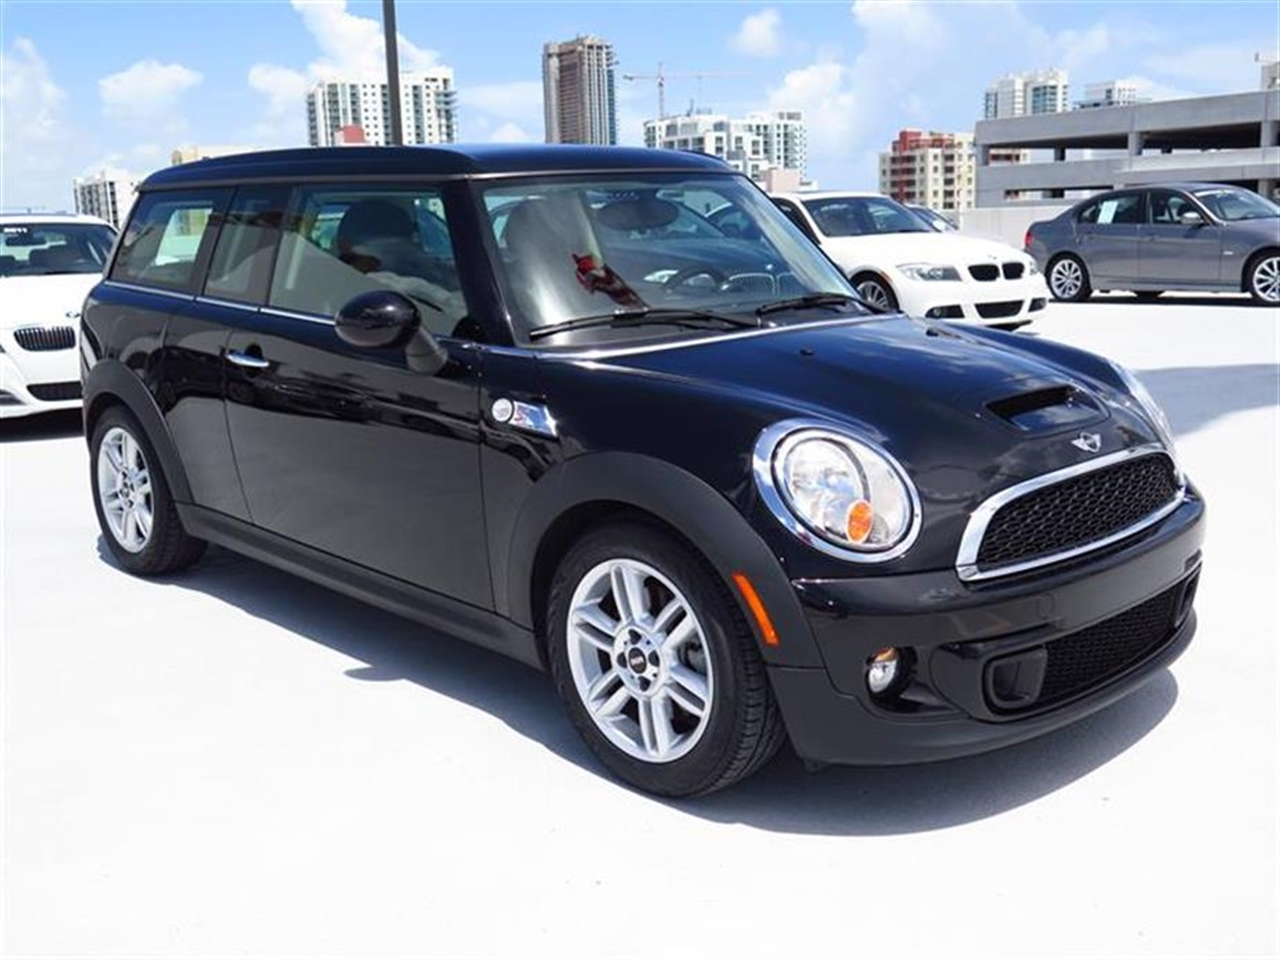 2013 MINI COOPER S 2dr Cpe S 14822 miles 1 rear cup holder 2 12V pwr outlets 5050 split fo